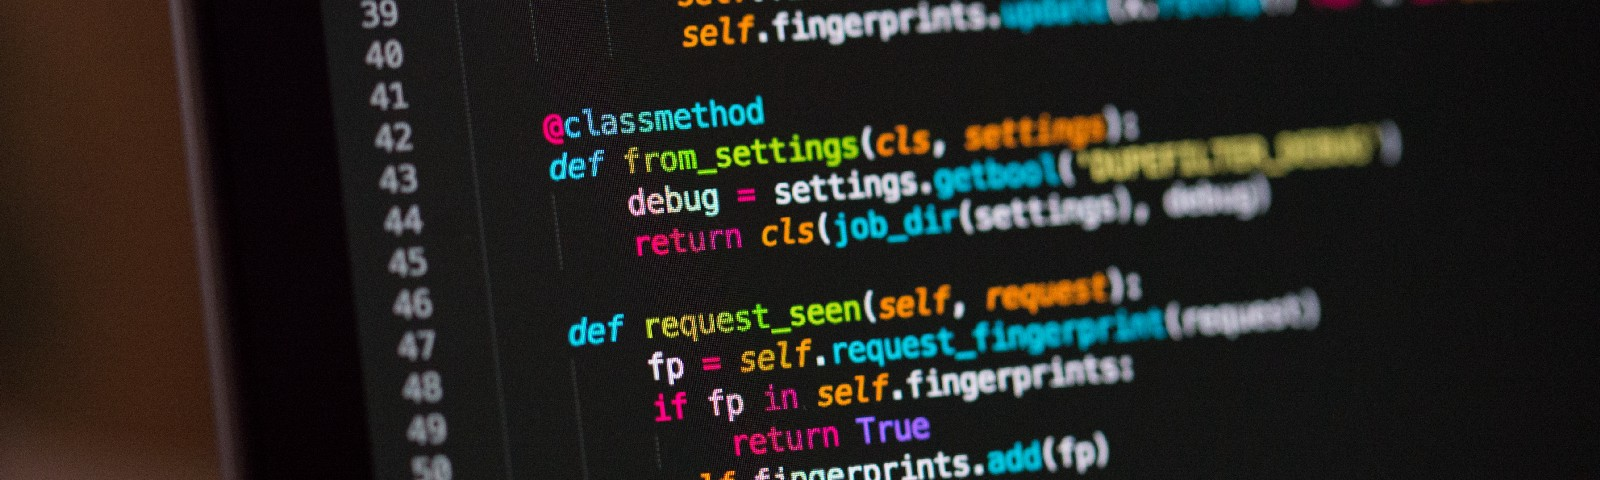 Python has brought computer programming to a vast new